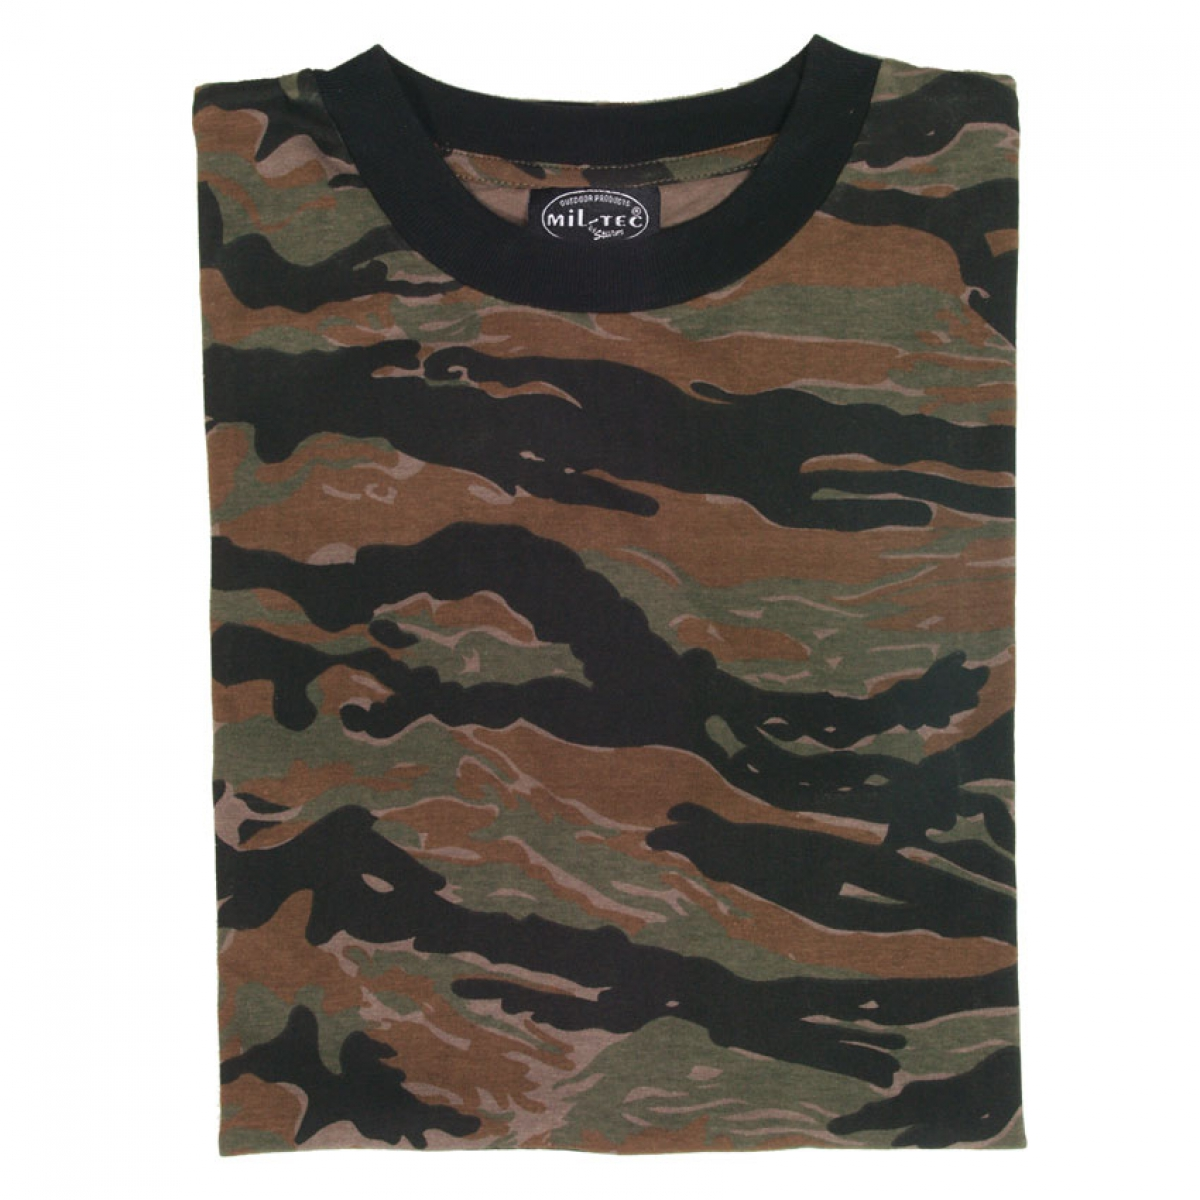 us t shirt army tarn shirt s 4xl viele farben uni camo bw. Black Bedroom Furniture Sets. Home Design Ideas